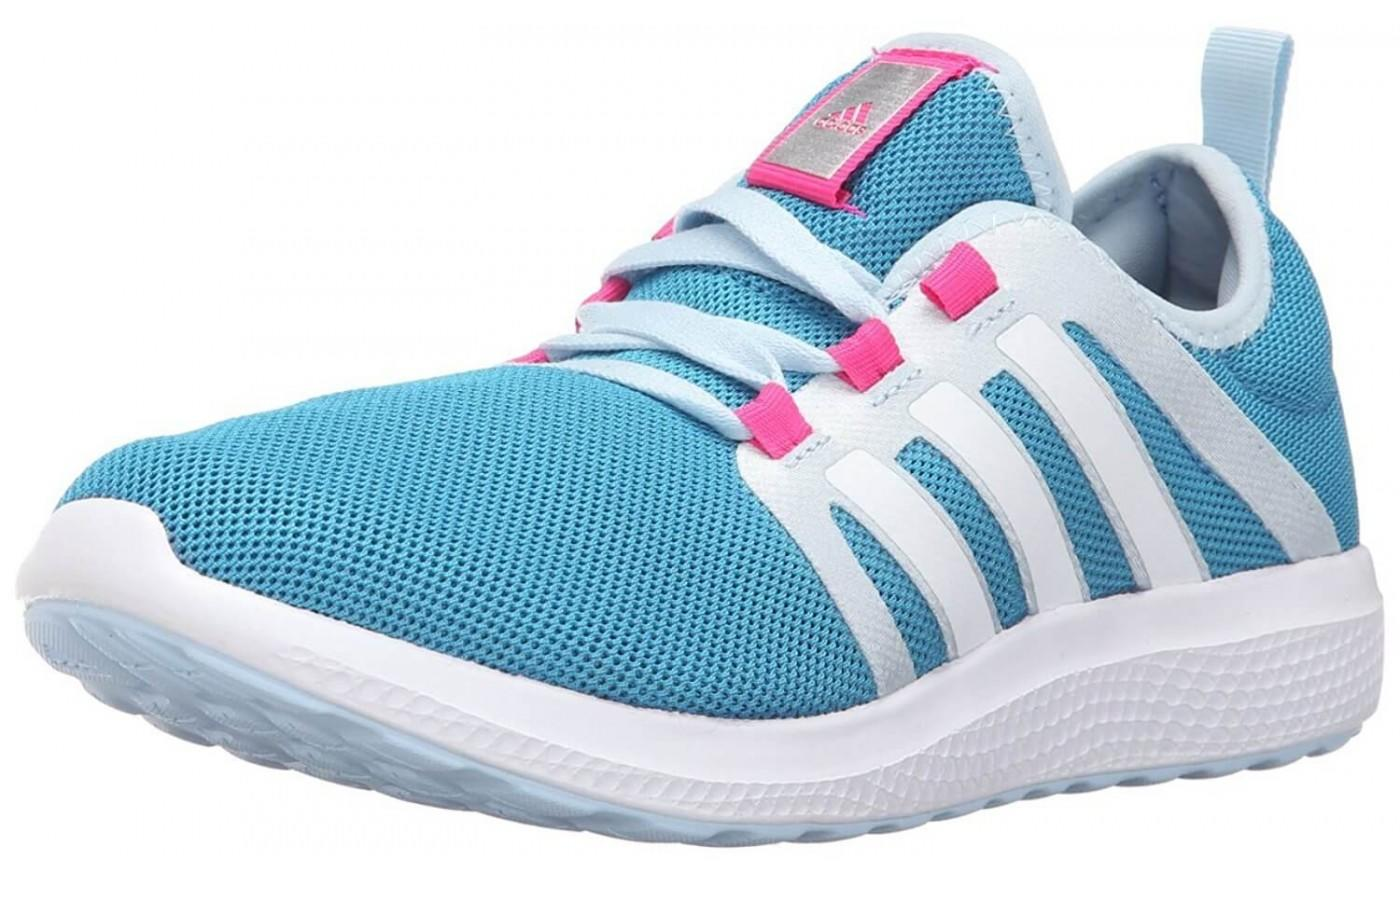 Adidas Climacool Fresh Bounce - Buy or Not in Mar 2019  2e38a5ad8